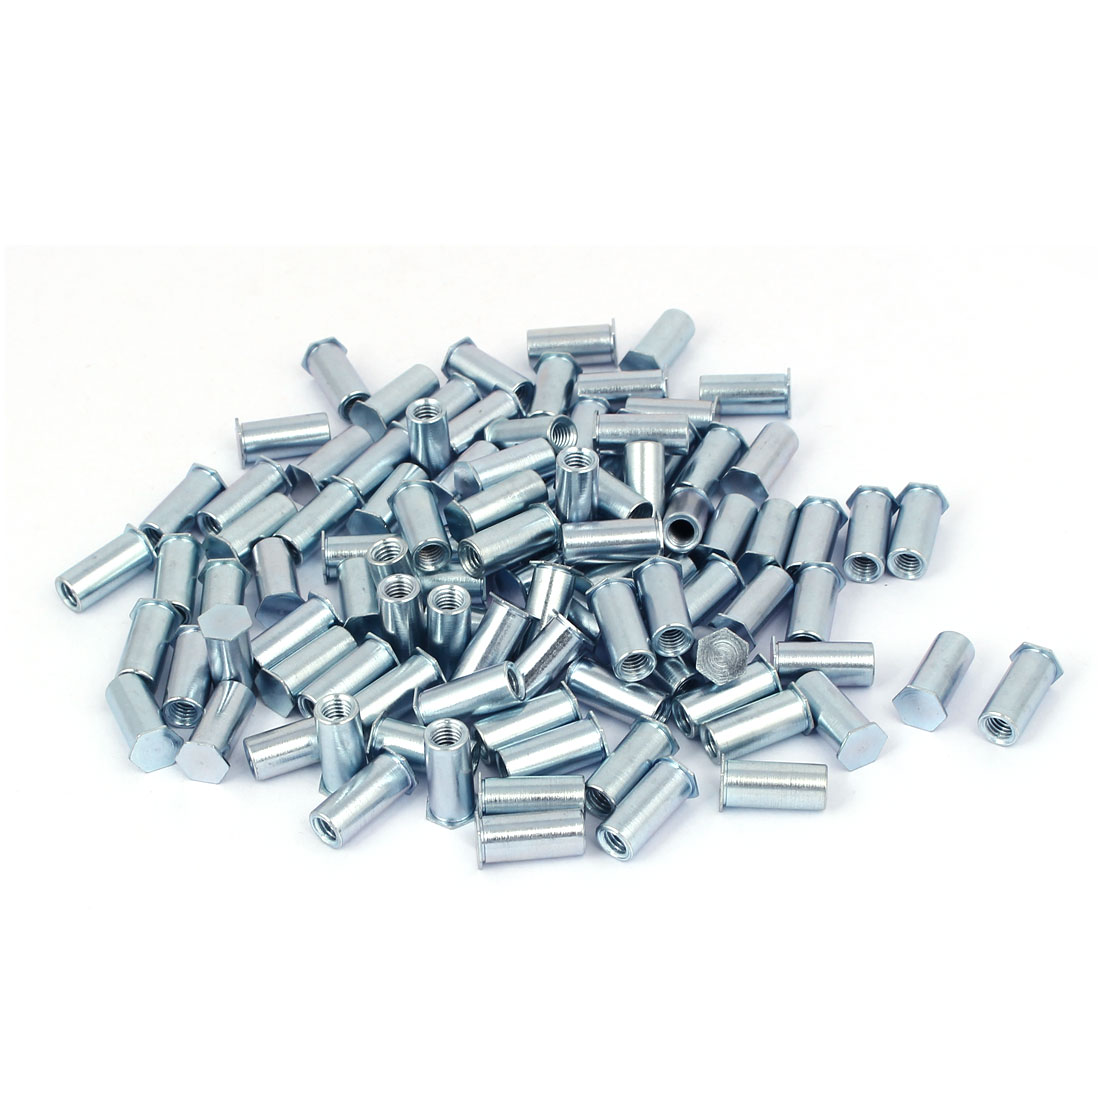 M5 x 18mm Thread Hexagon Head Blind Self Clinching Standoffs 100 Pcs